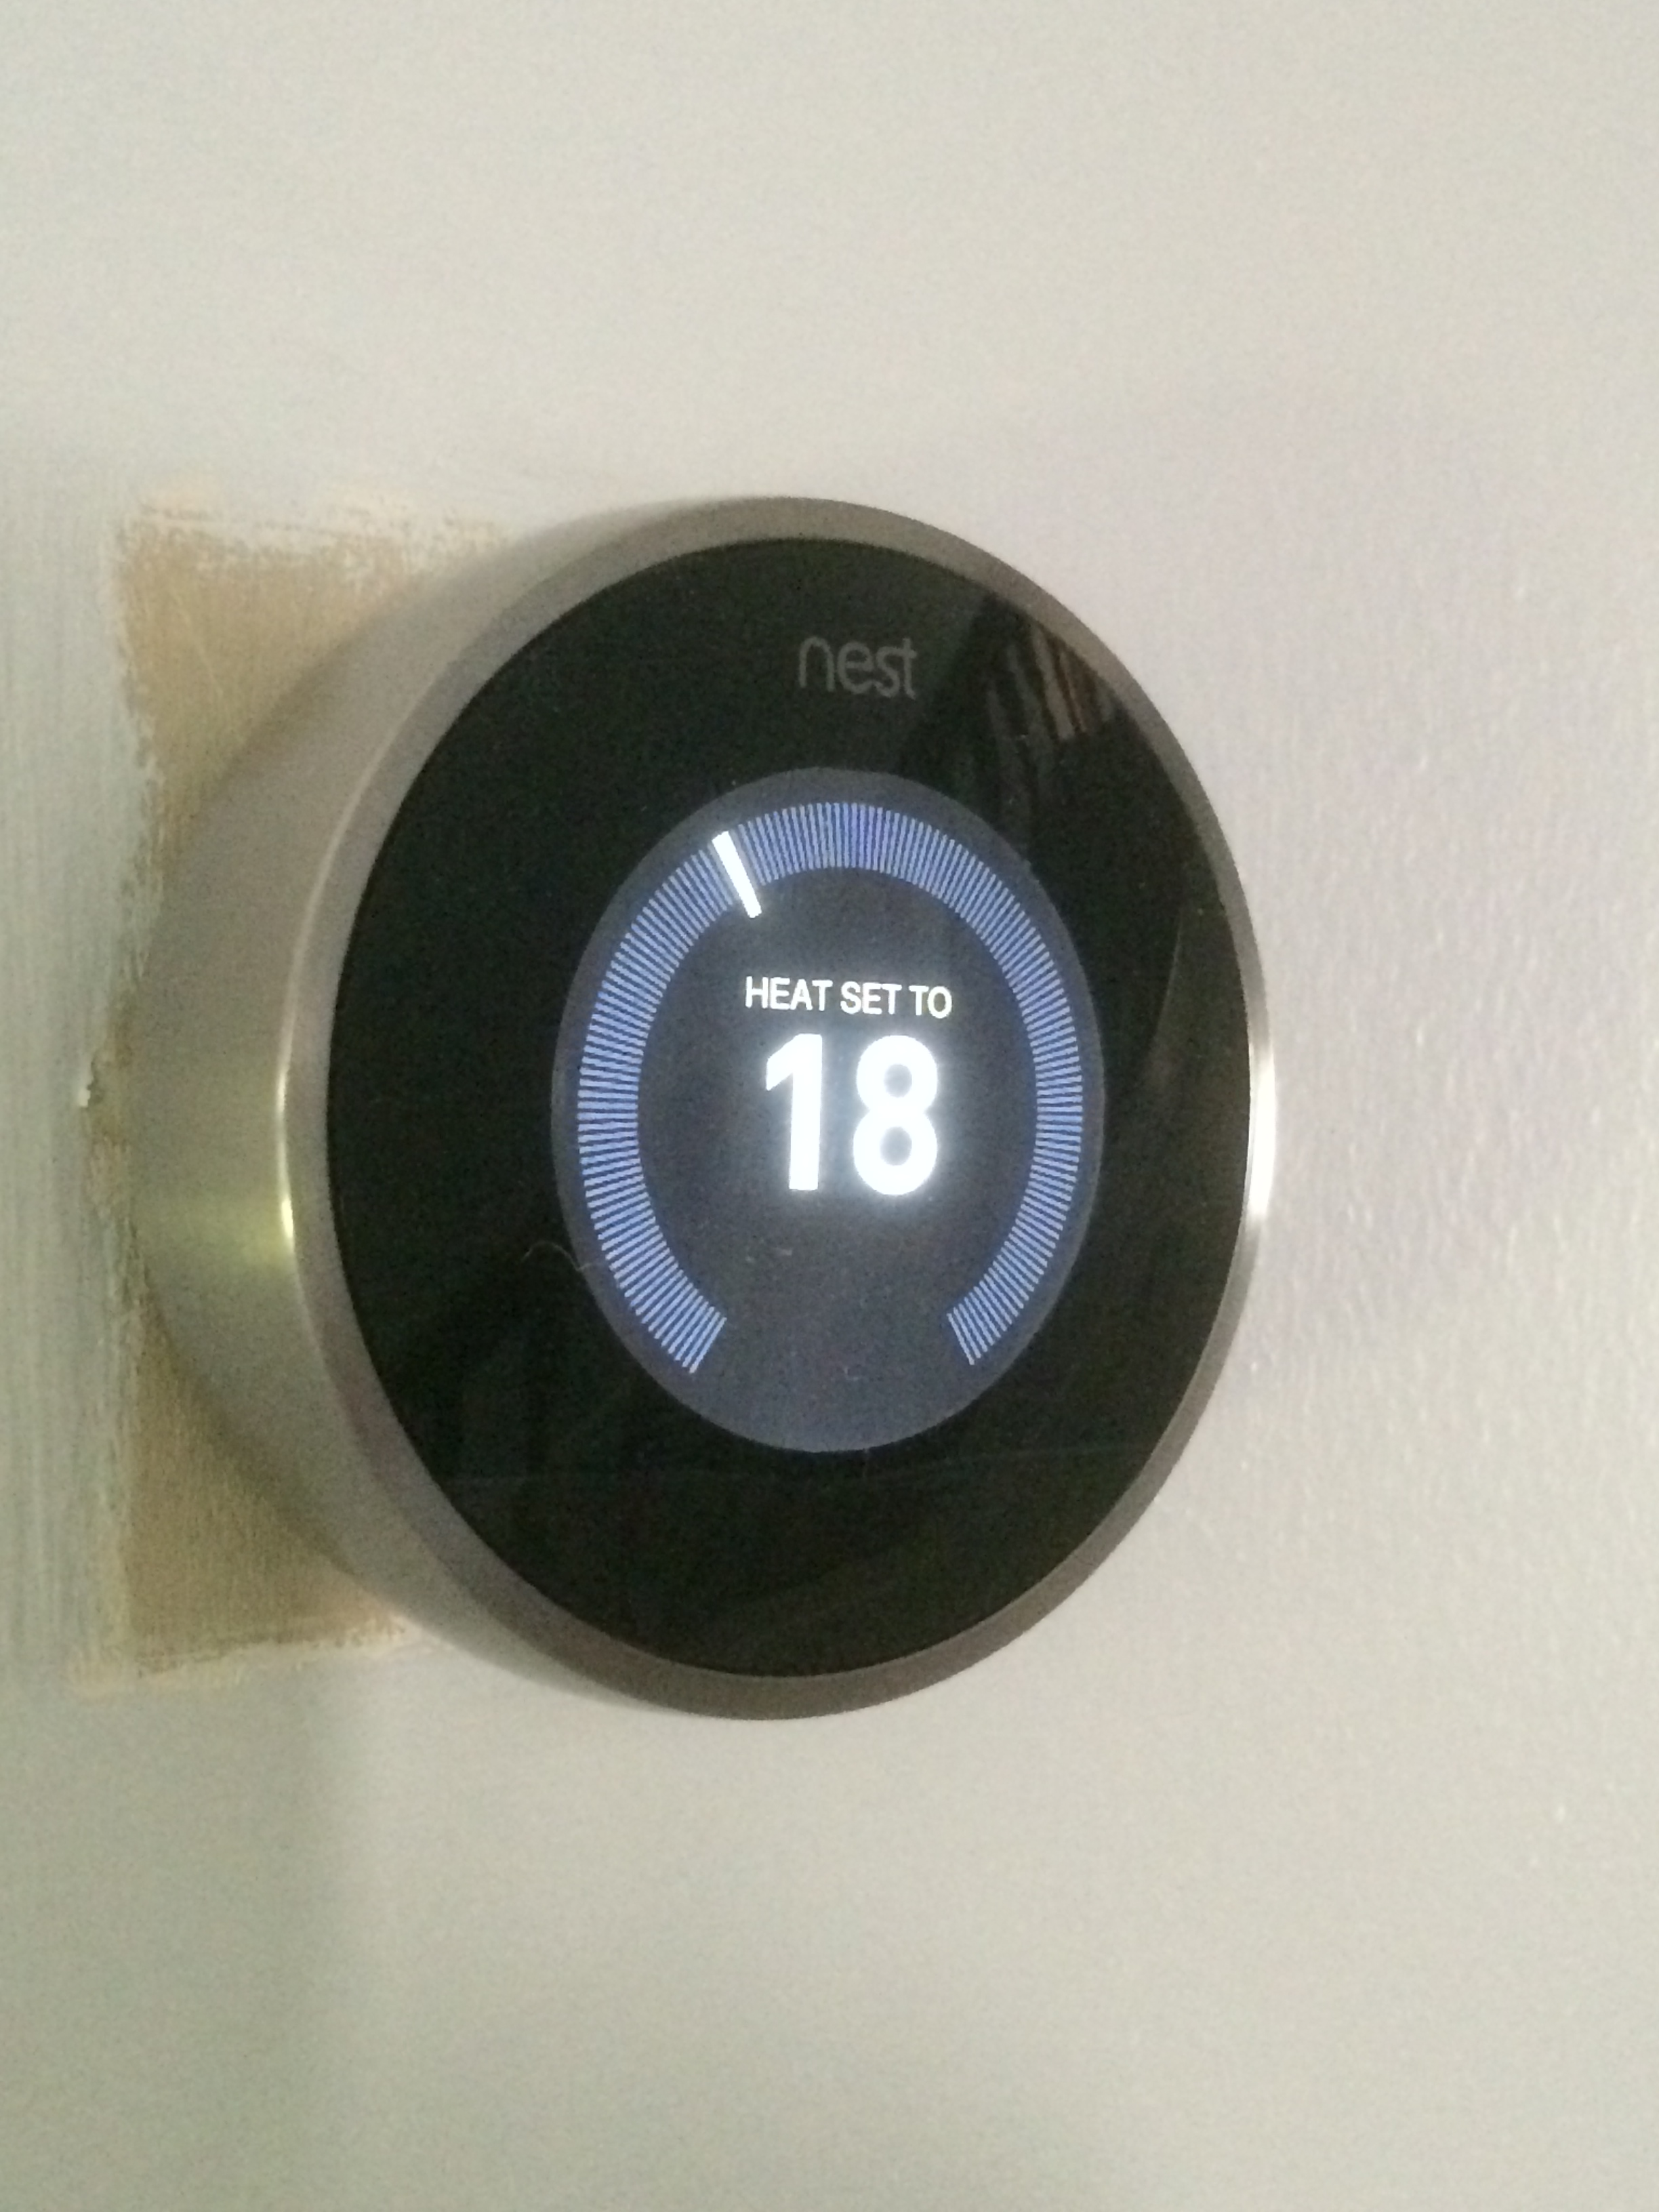 Installation Of A Nest Learning Thermostat In April 2014